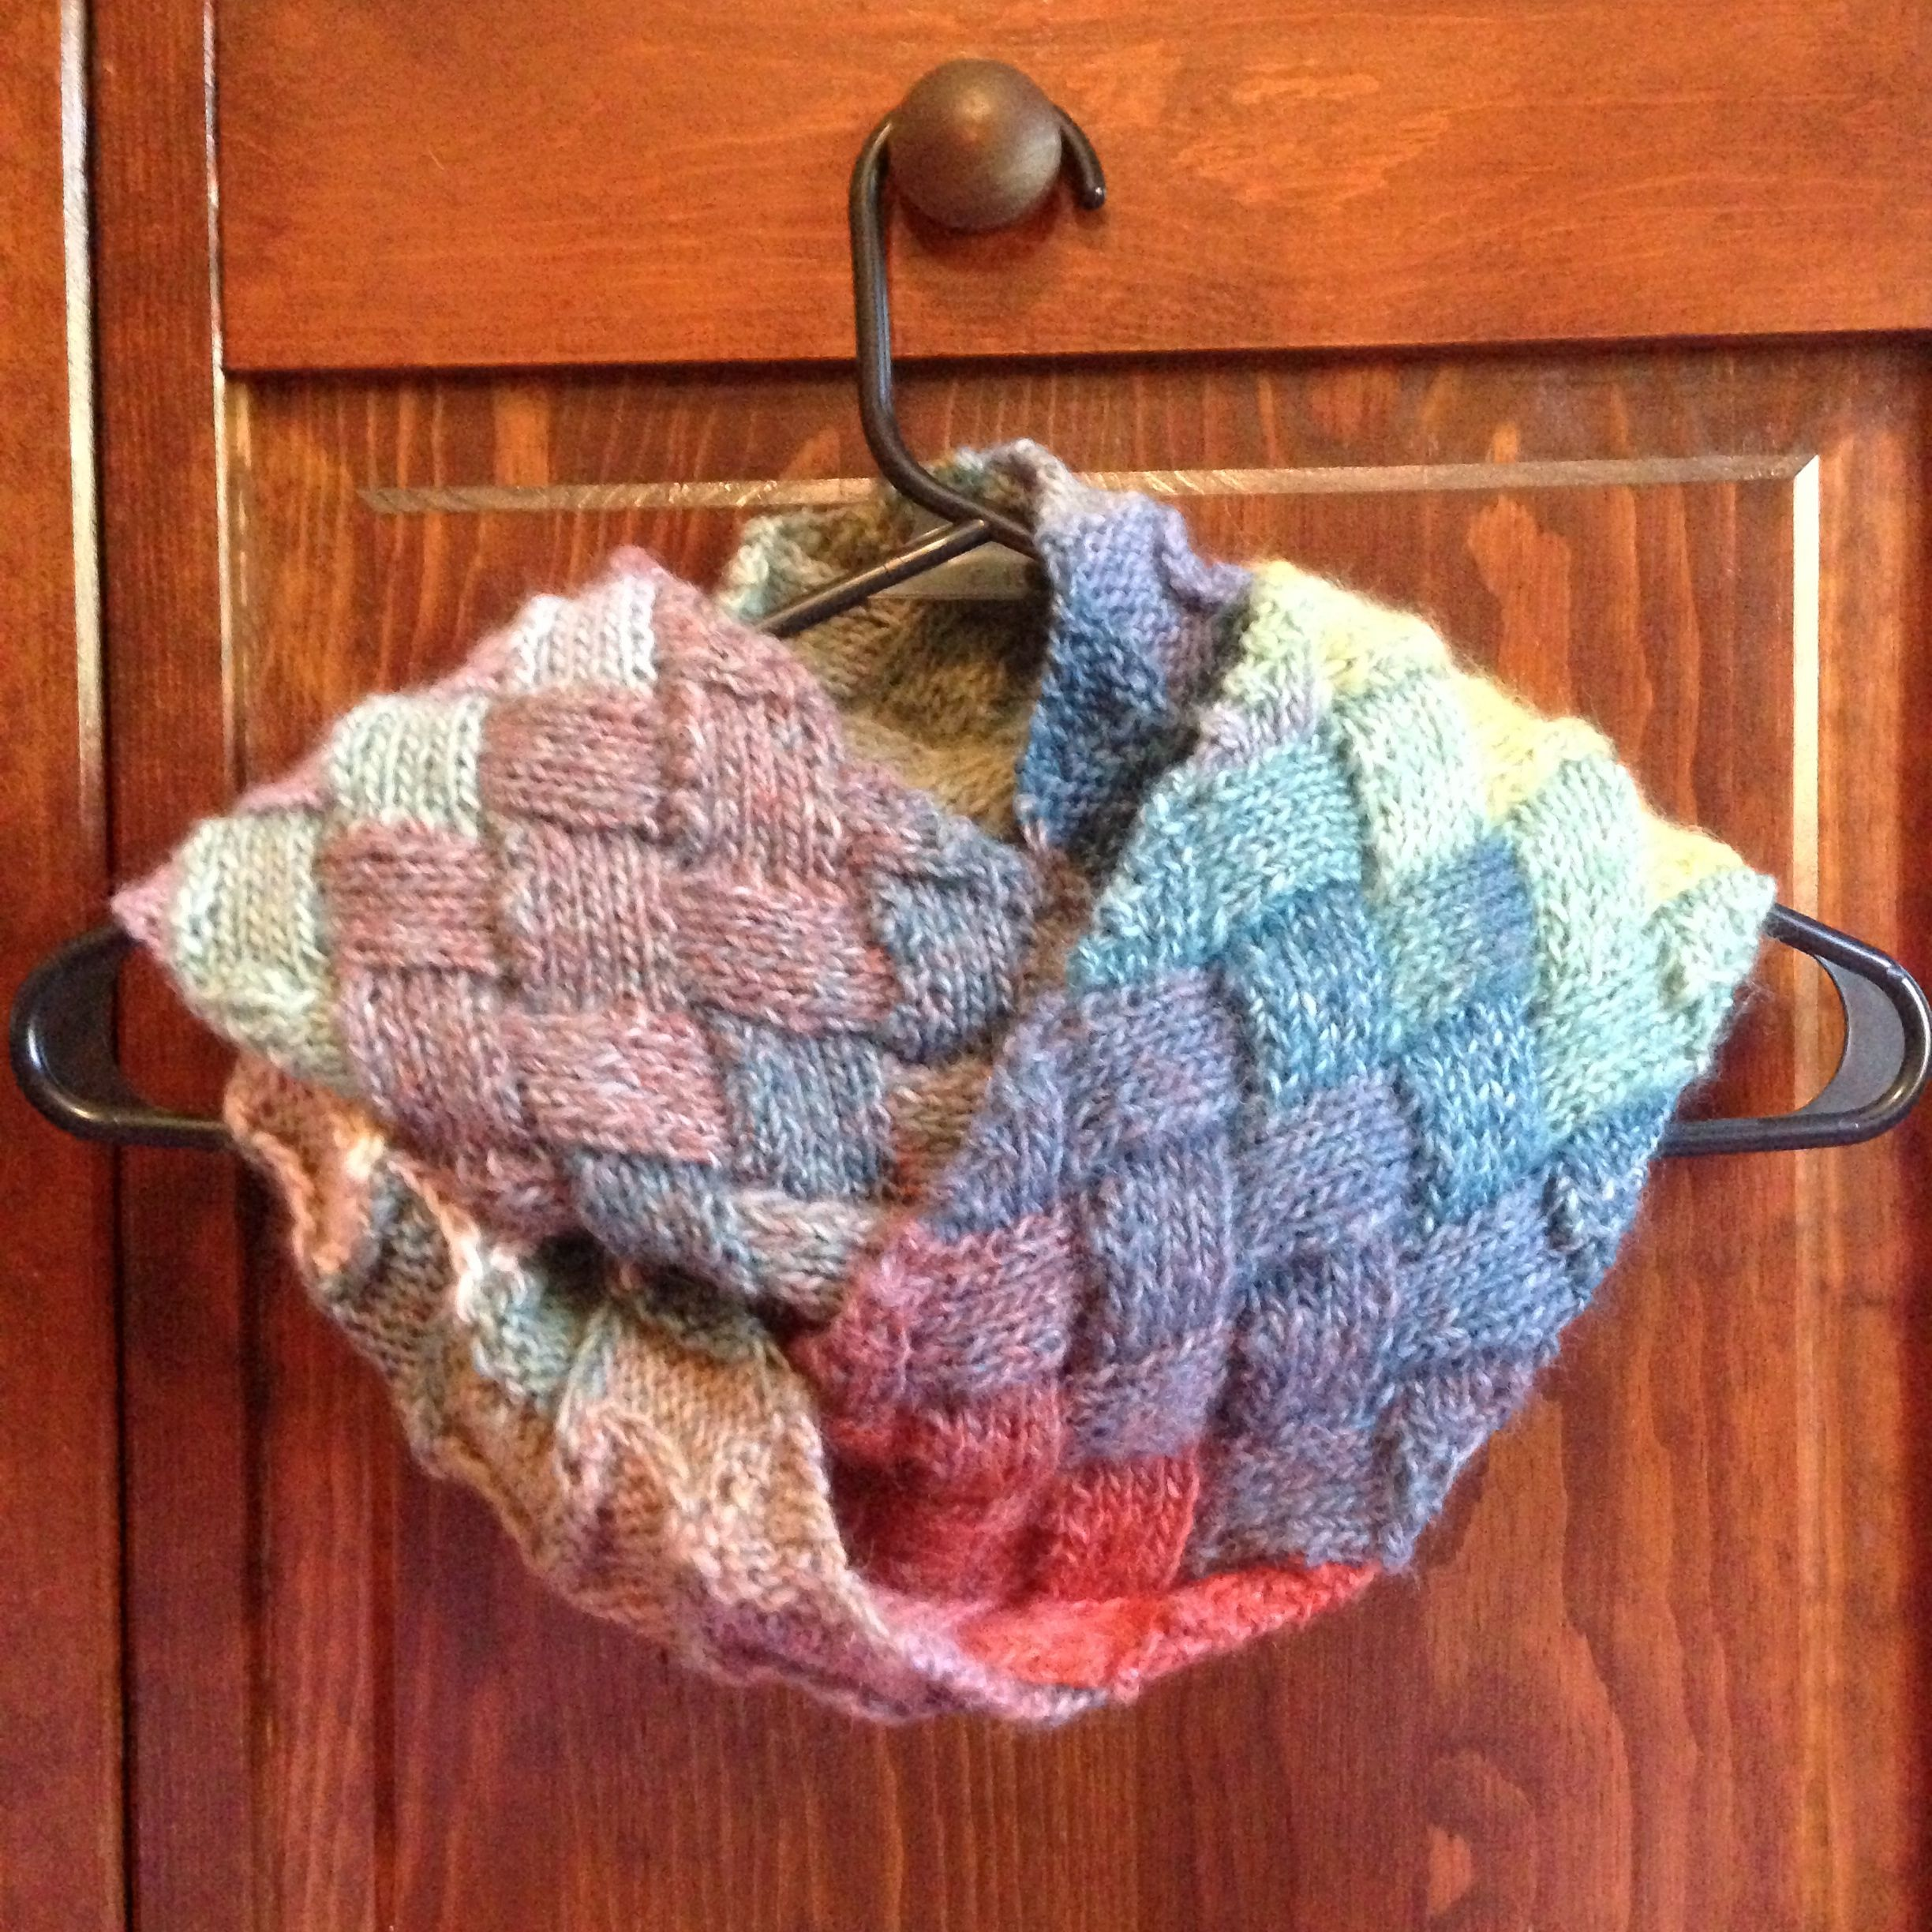 Knit entrelac infinity scarf i made using lion brand amazing color knit entrelac infinity scarf i made using lion brand amazing color changing yarn the pattern is a entrelac from knittyotter on ravelry bankloansurffo Gallery